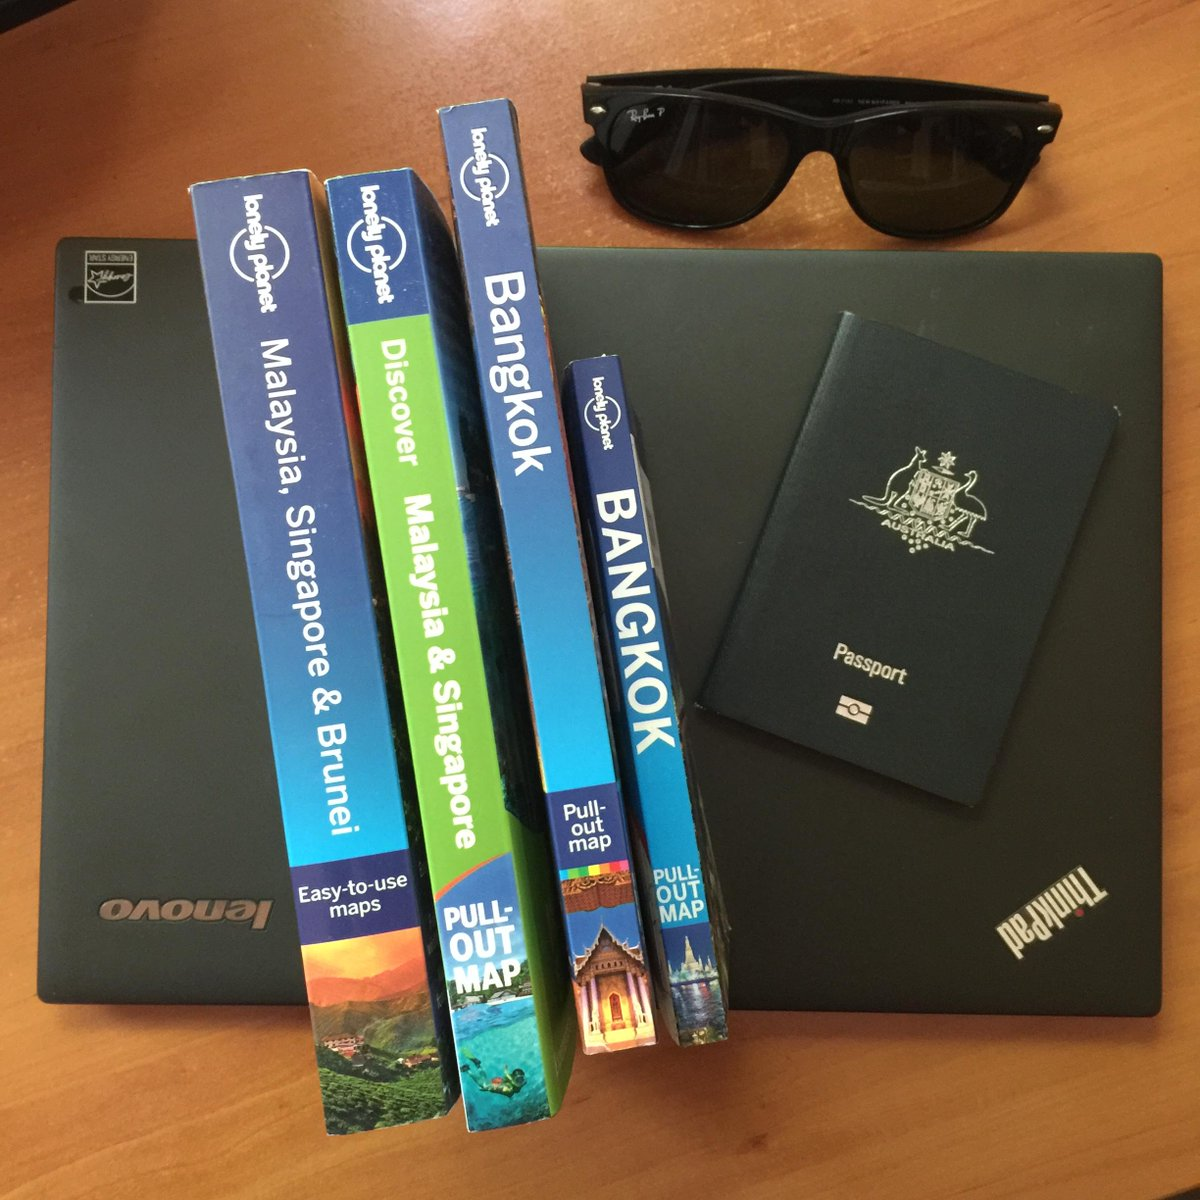 Want to start blogging? Take my Blogging Your Interest course at WEA Sydney https://t.co/8OmFFpLs64 #blog #blogging https://t.co/I6Zfvs4za7